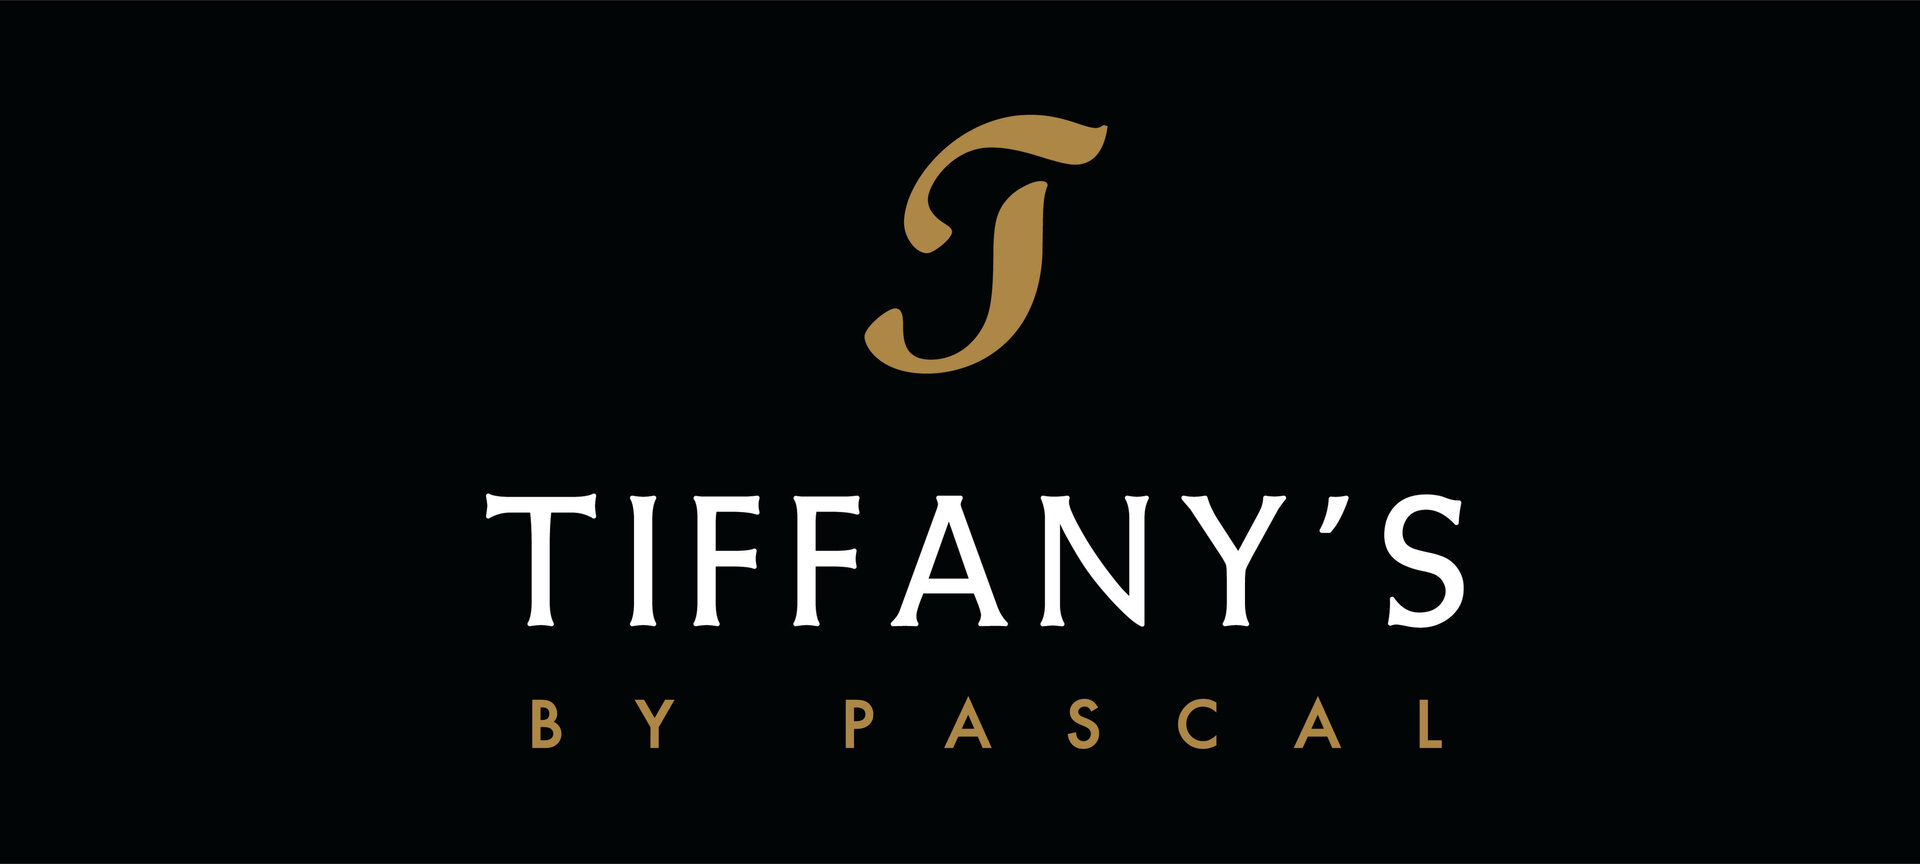 Tiffany's by Pascal - logo1